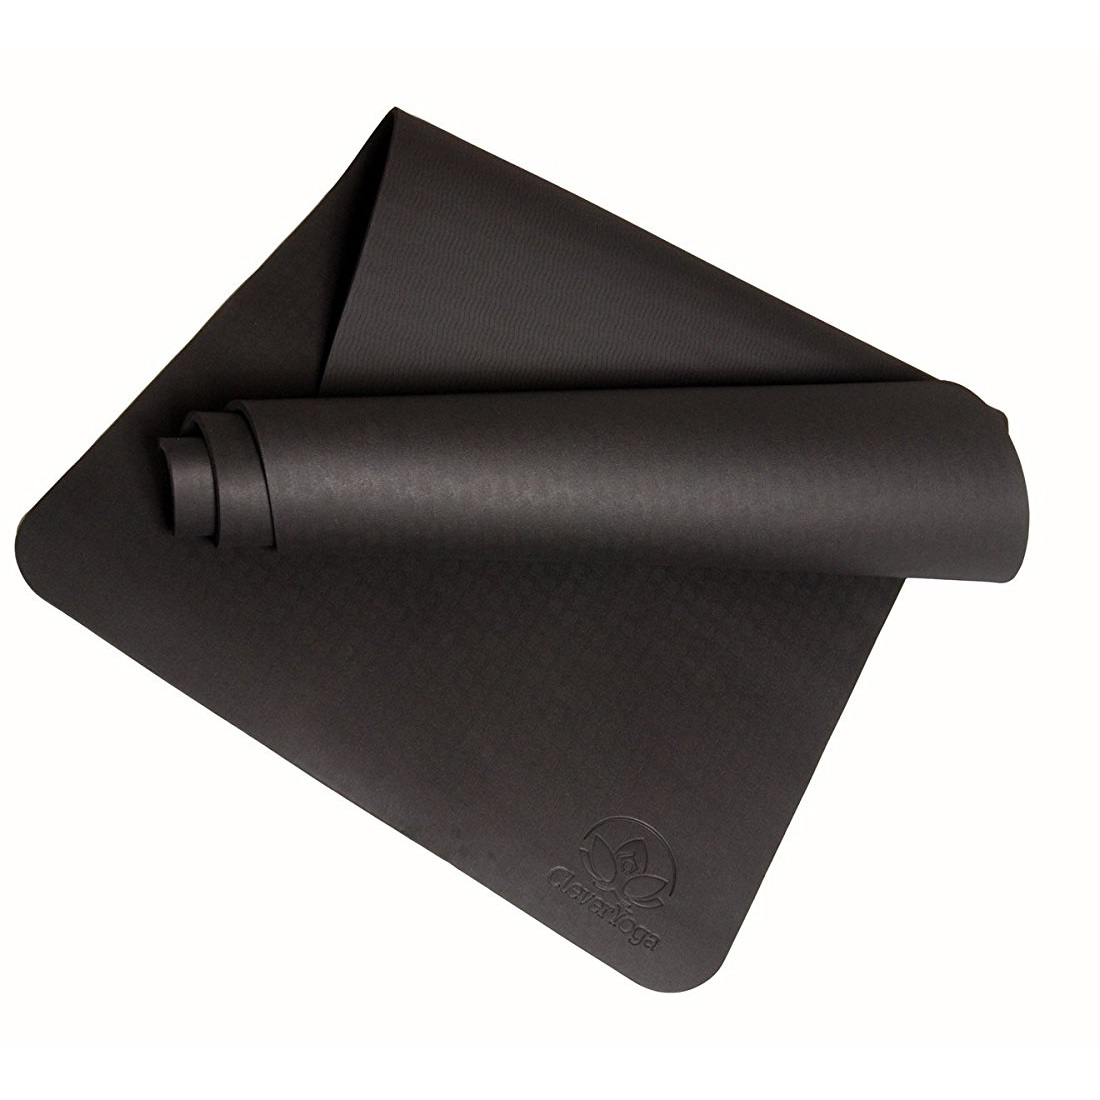 Tpe Yoga Mat Review Blog Dandk